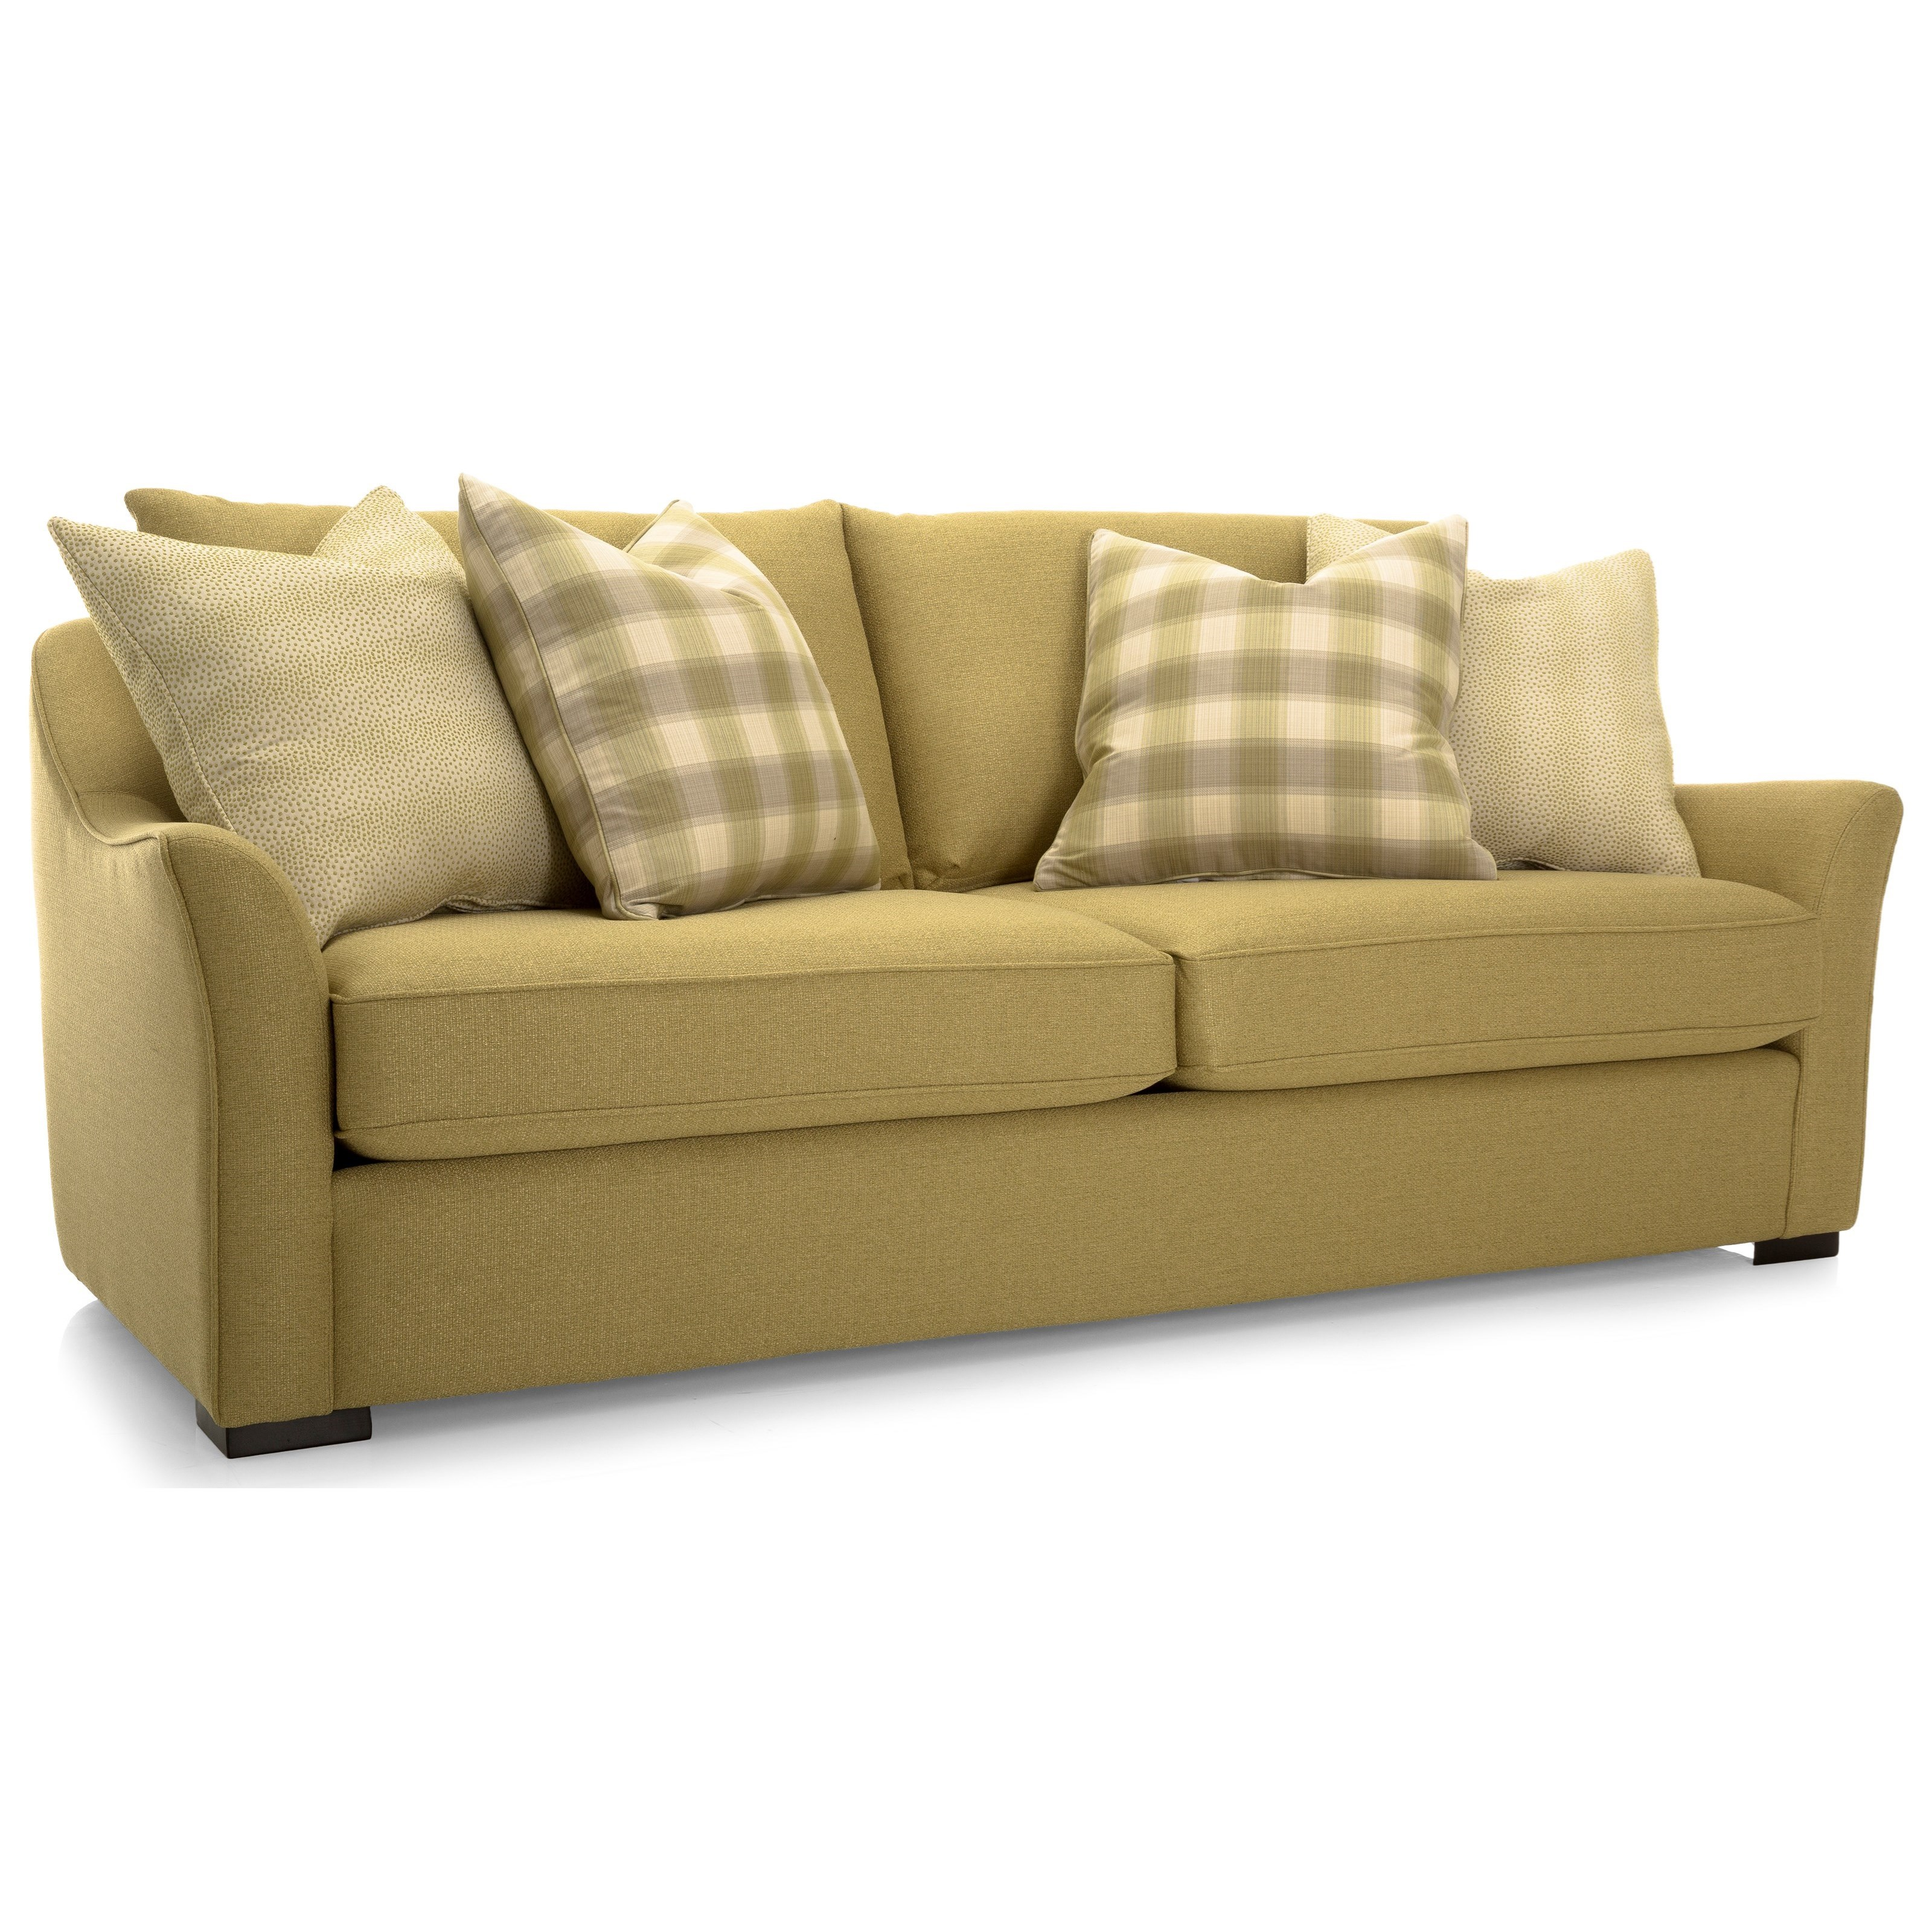 7112 Series Sofa by Decor-Rest at Stoney Creek Furniture